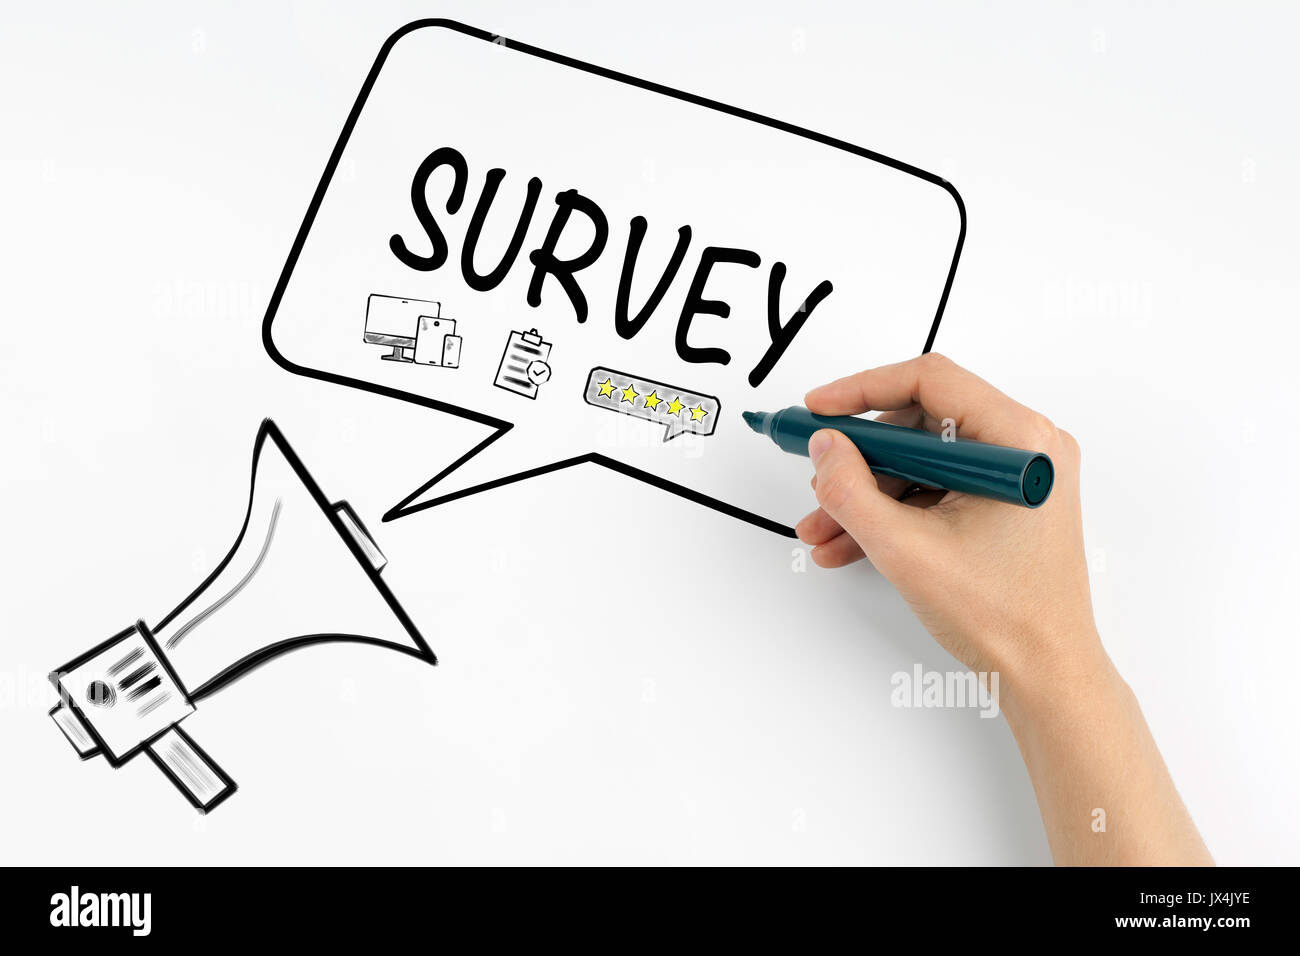 Survey concept. Megaphone and text on a white background. - Stock Image